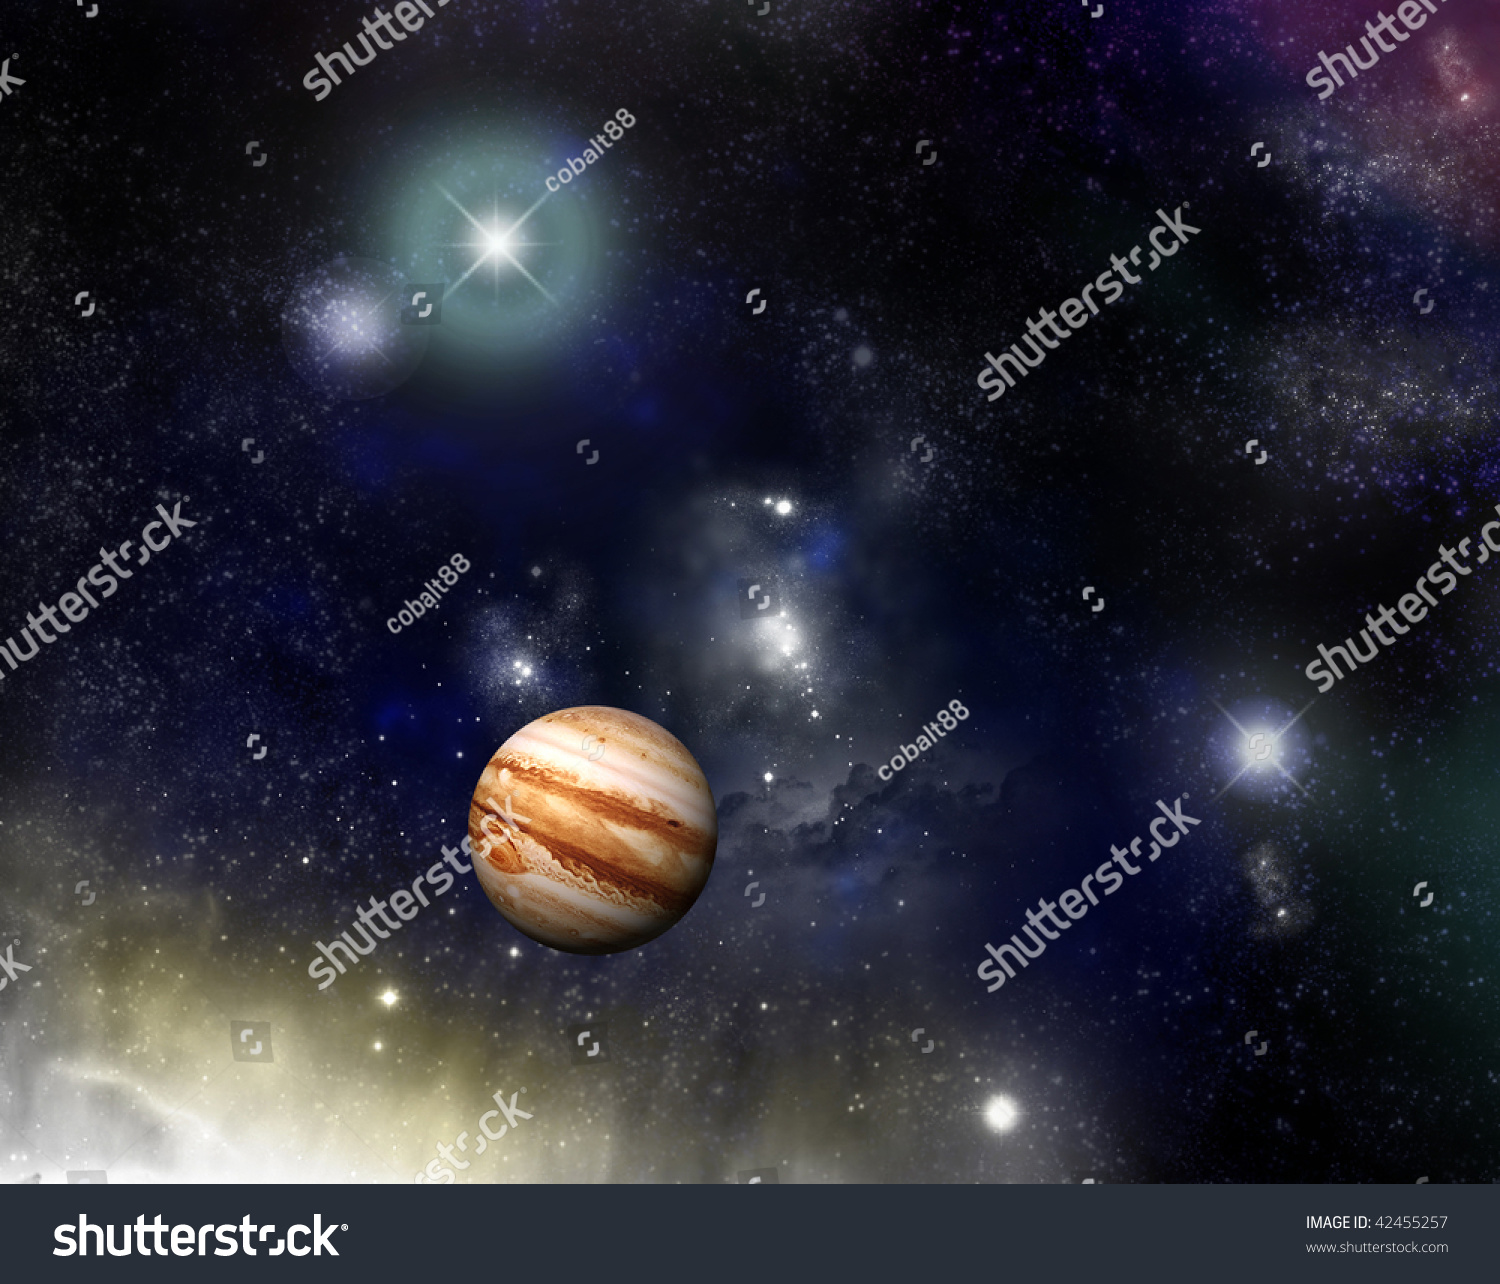 235 best Our beautiful Galaxy images on Pinterest | Galaxies ...